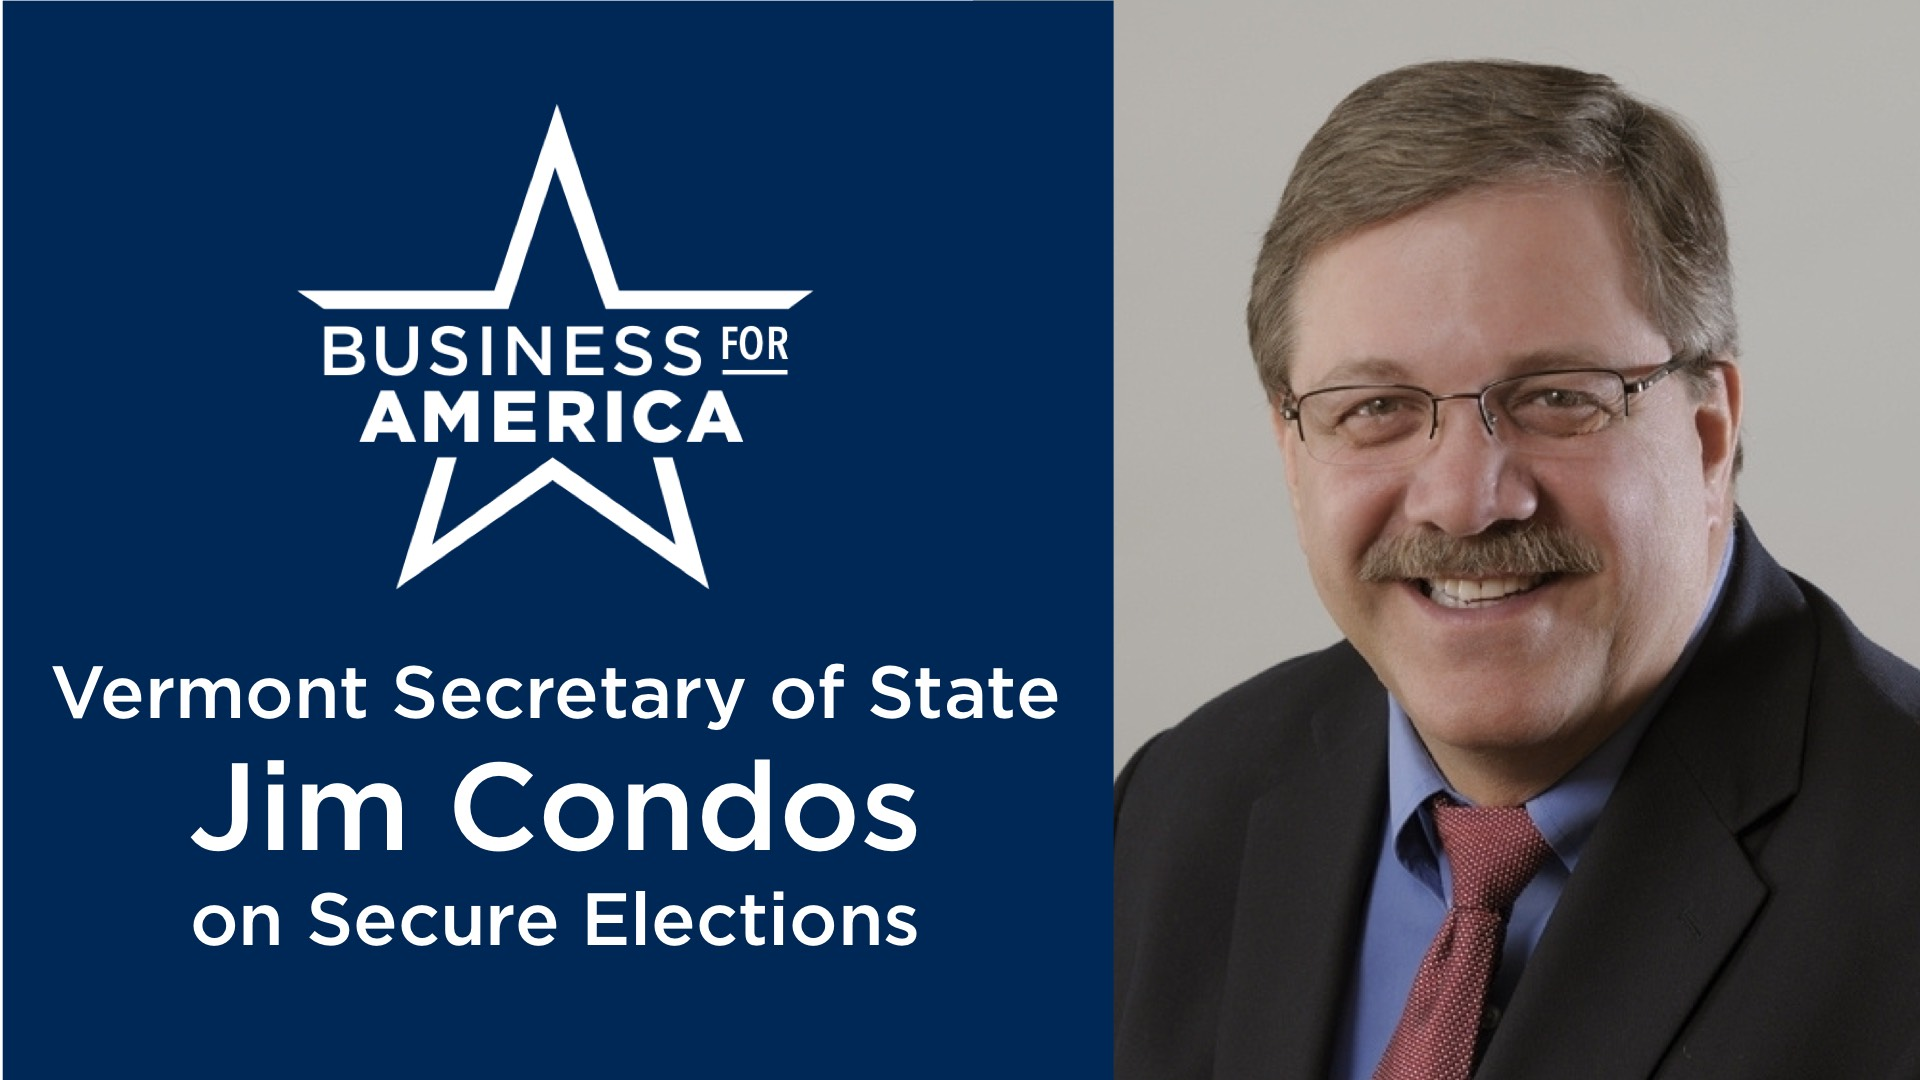 Vermont Secretary of State Jim Condos on Secure Elections